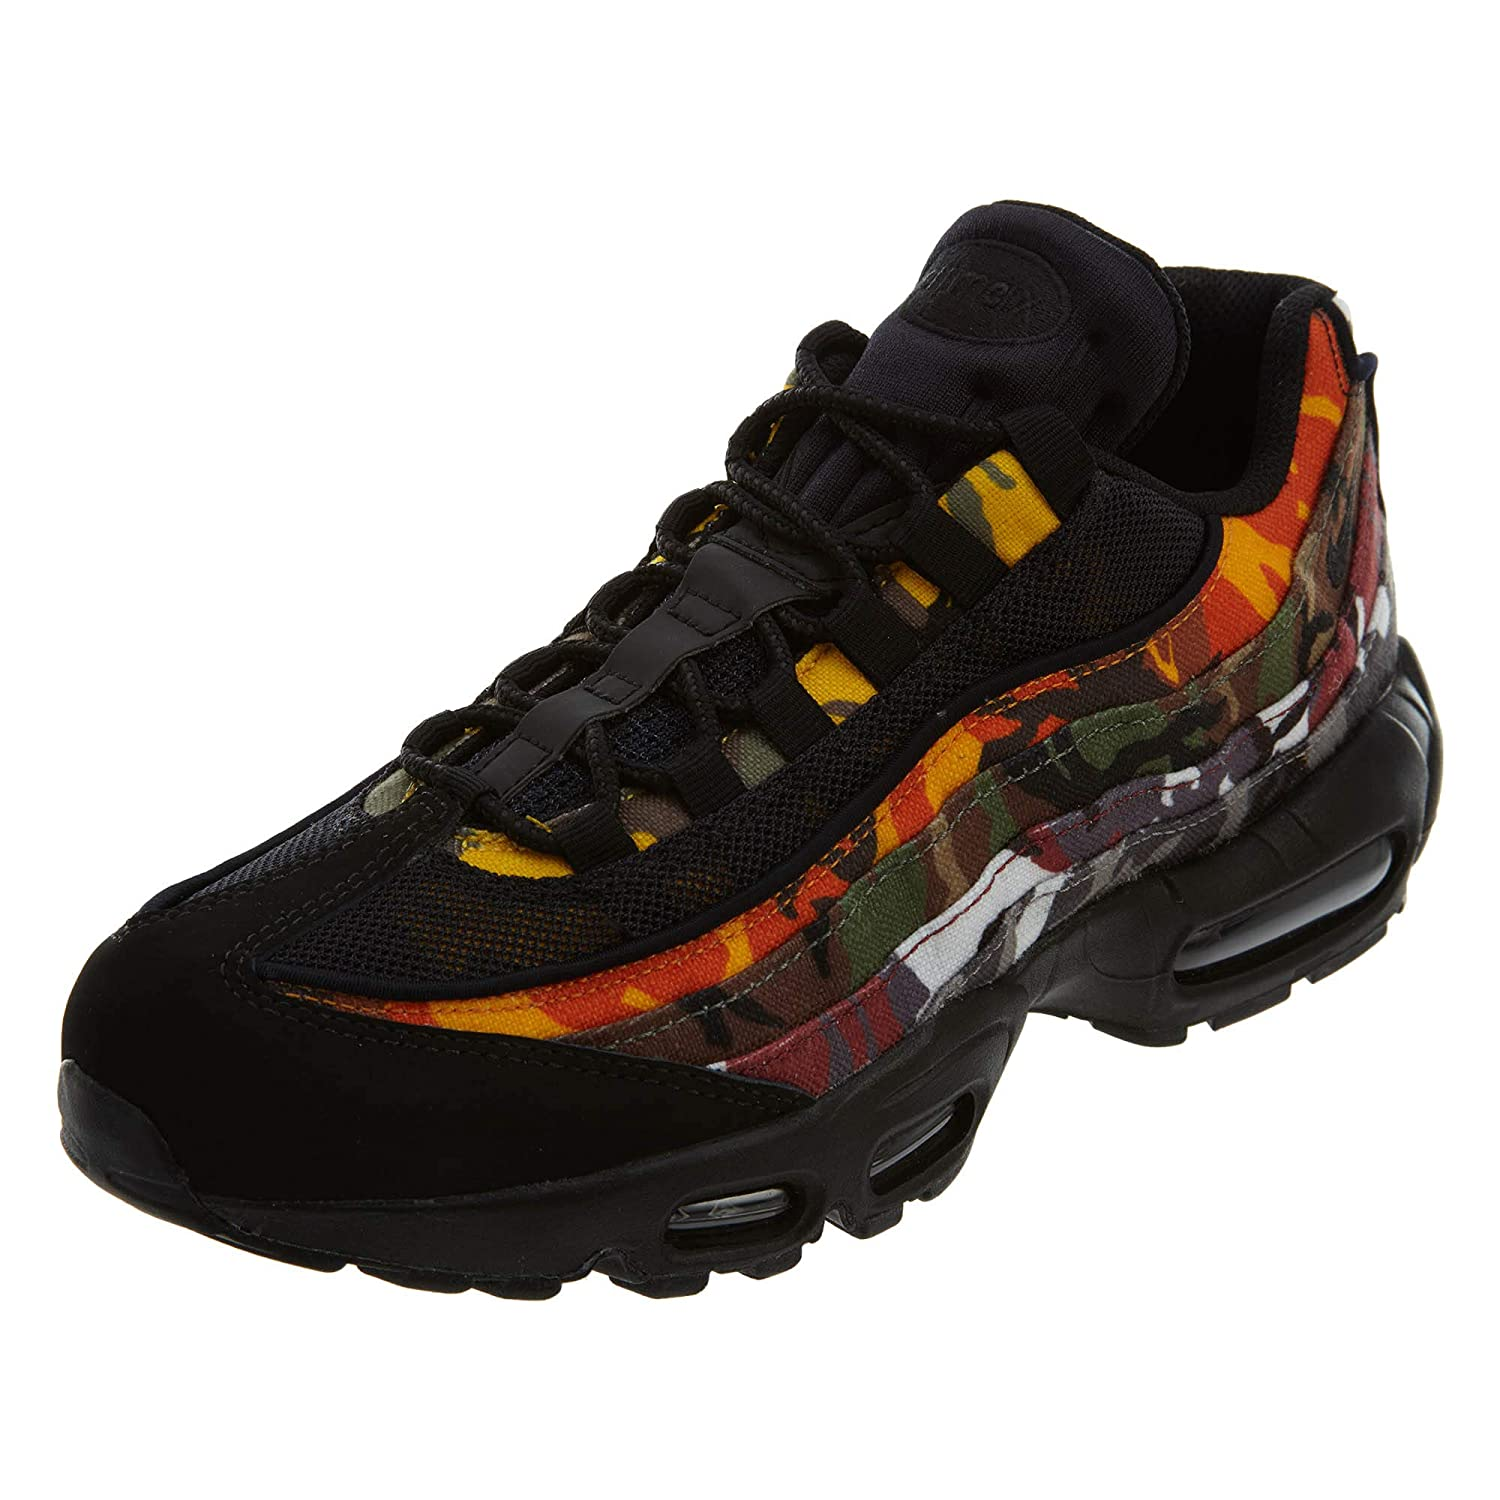 uk availability 73ed1 01406 Amazon.com   Nike Air Max 95 Erdl Party Mens Sneaker Mens   Basketball